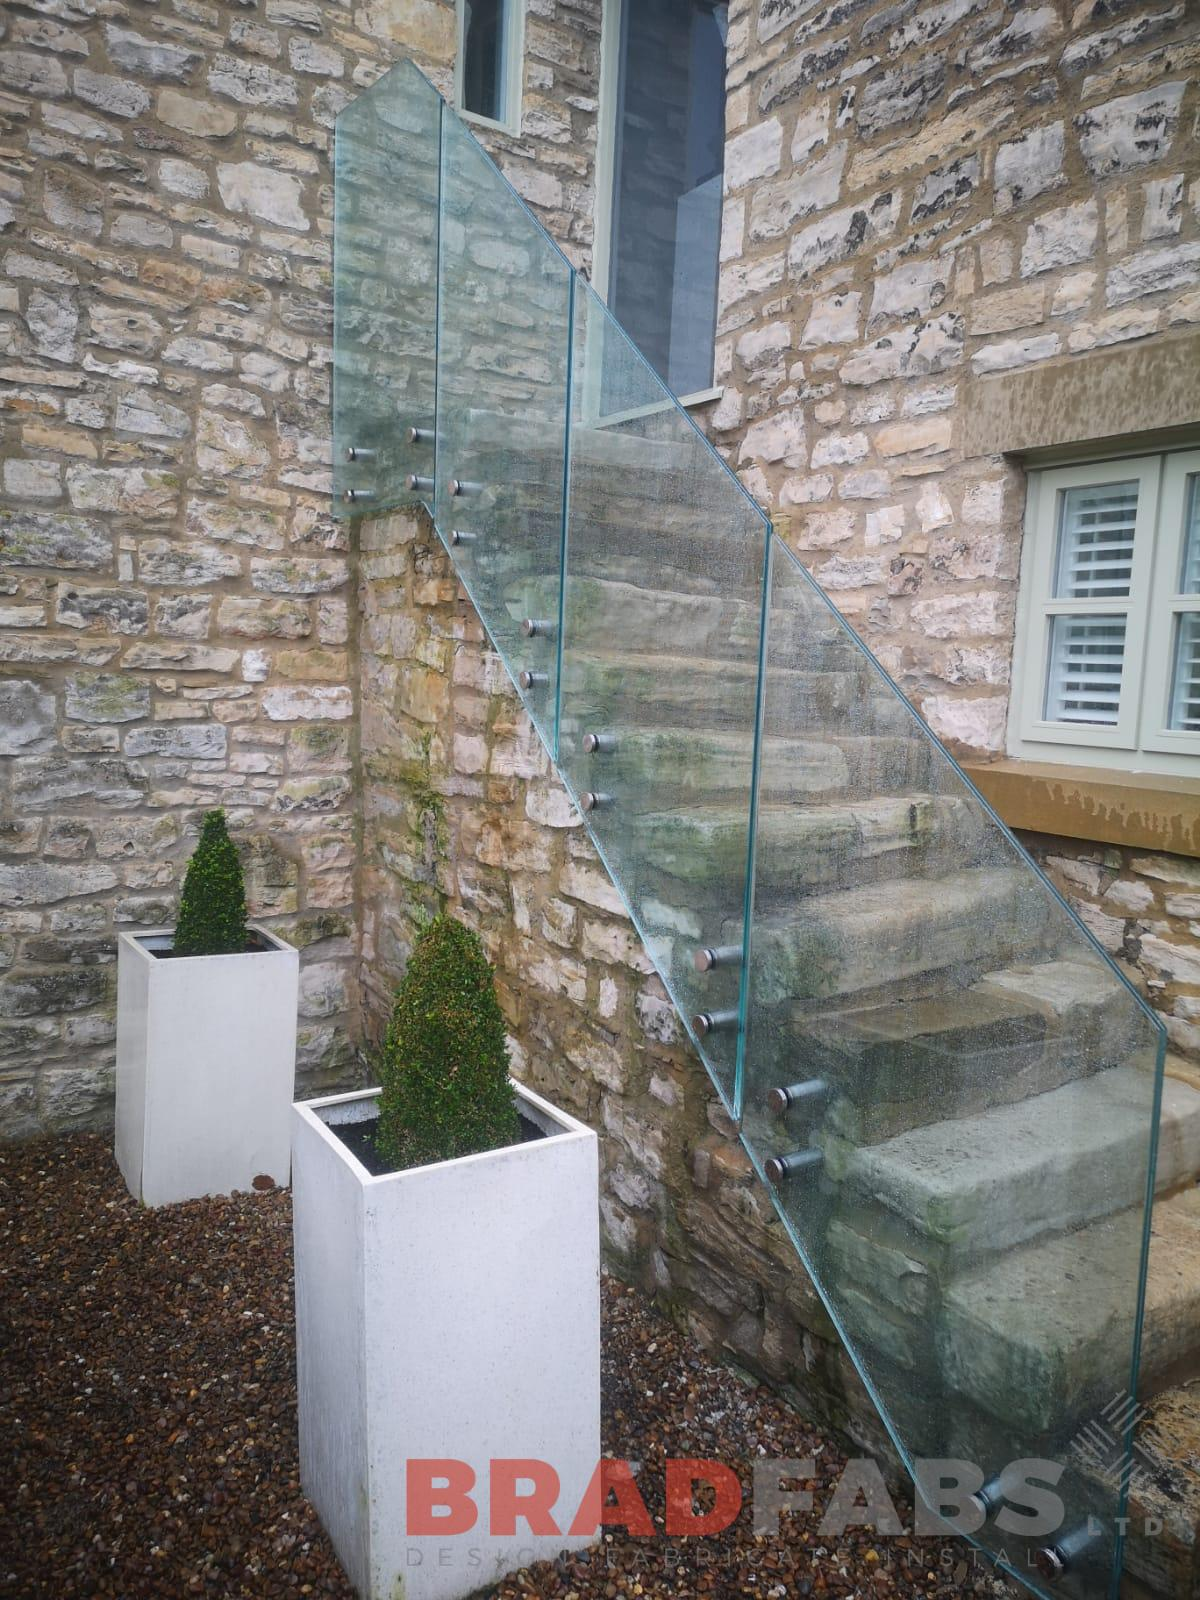 Bespoke laminated glass balustrade for our customers external stone stairs by Bradfabs